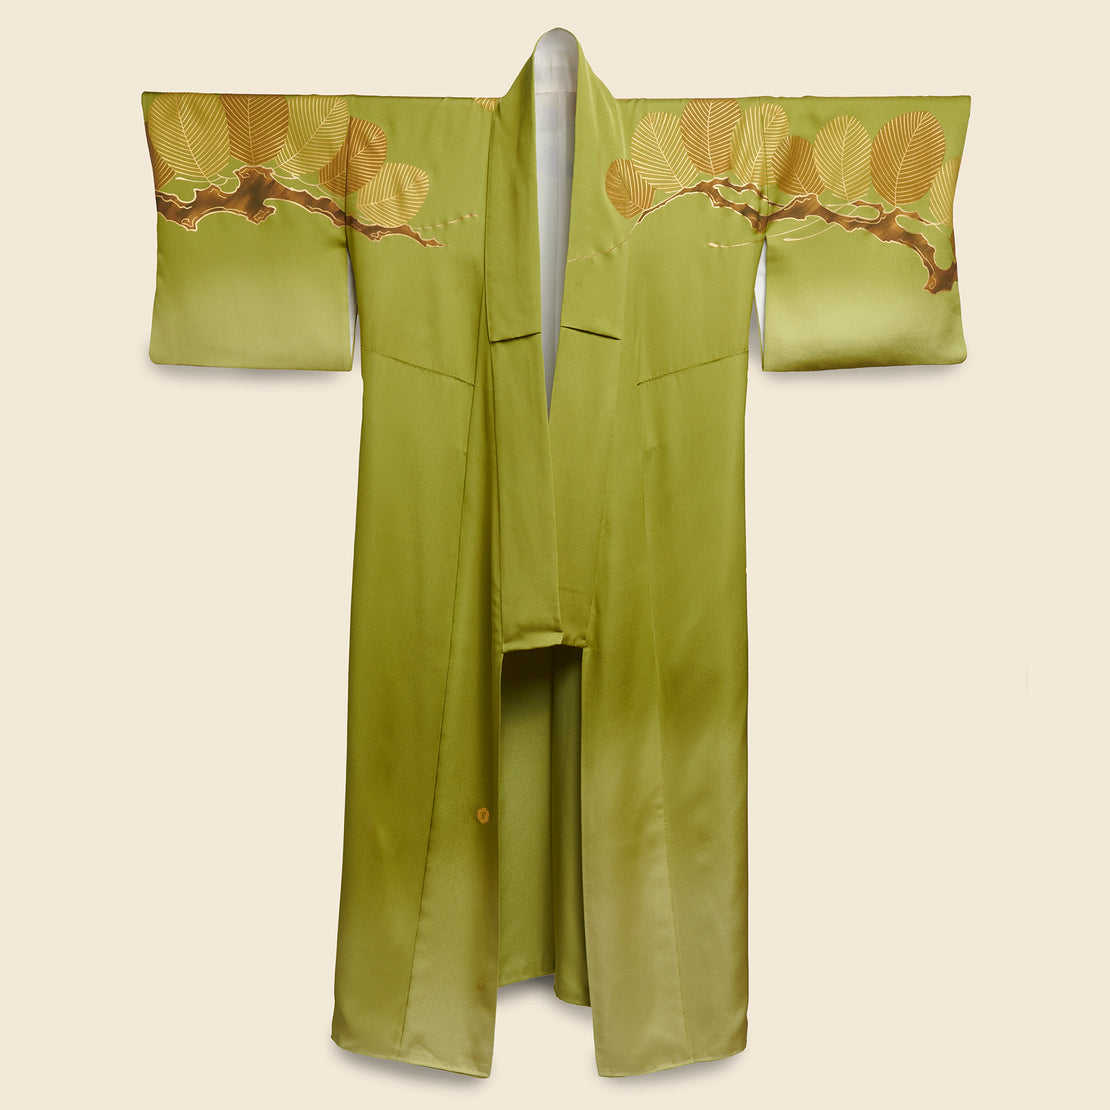 Vintage Long Silk Kimono - Green/Gold, Branch & Leaf Motif